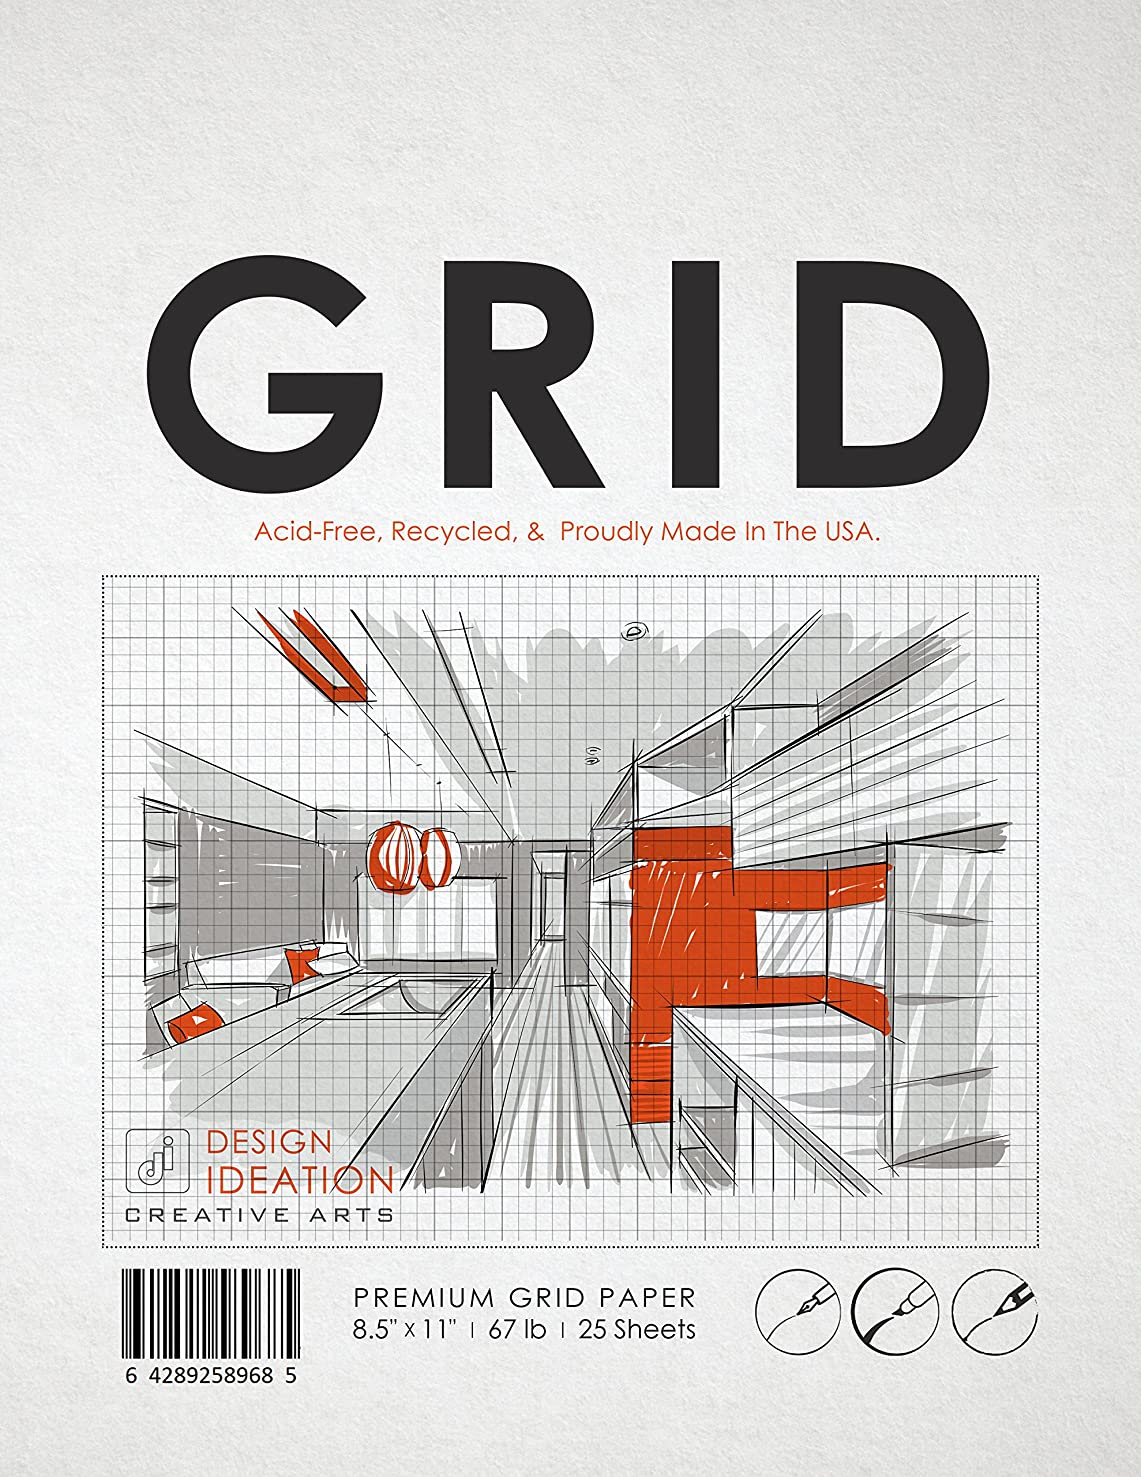 Premium Grid Paper for Pencil, Ink, and Marker. Great for Art, Design and Education. Loose Sheet Pack. (25 Sheets (8.5